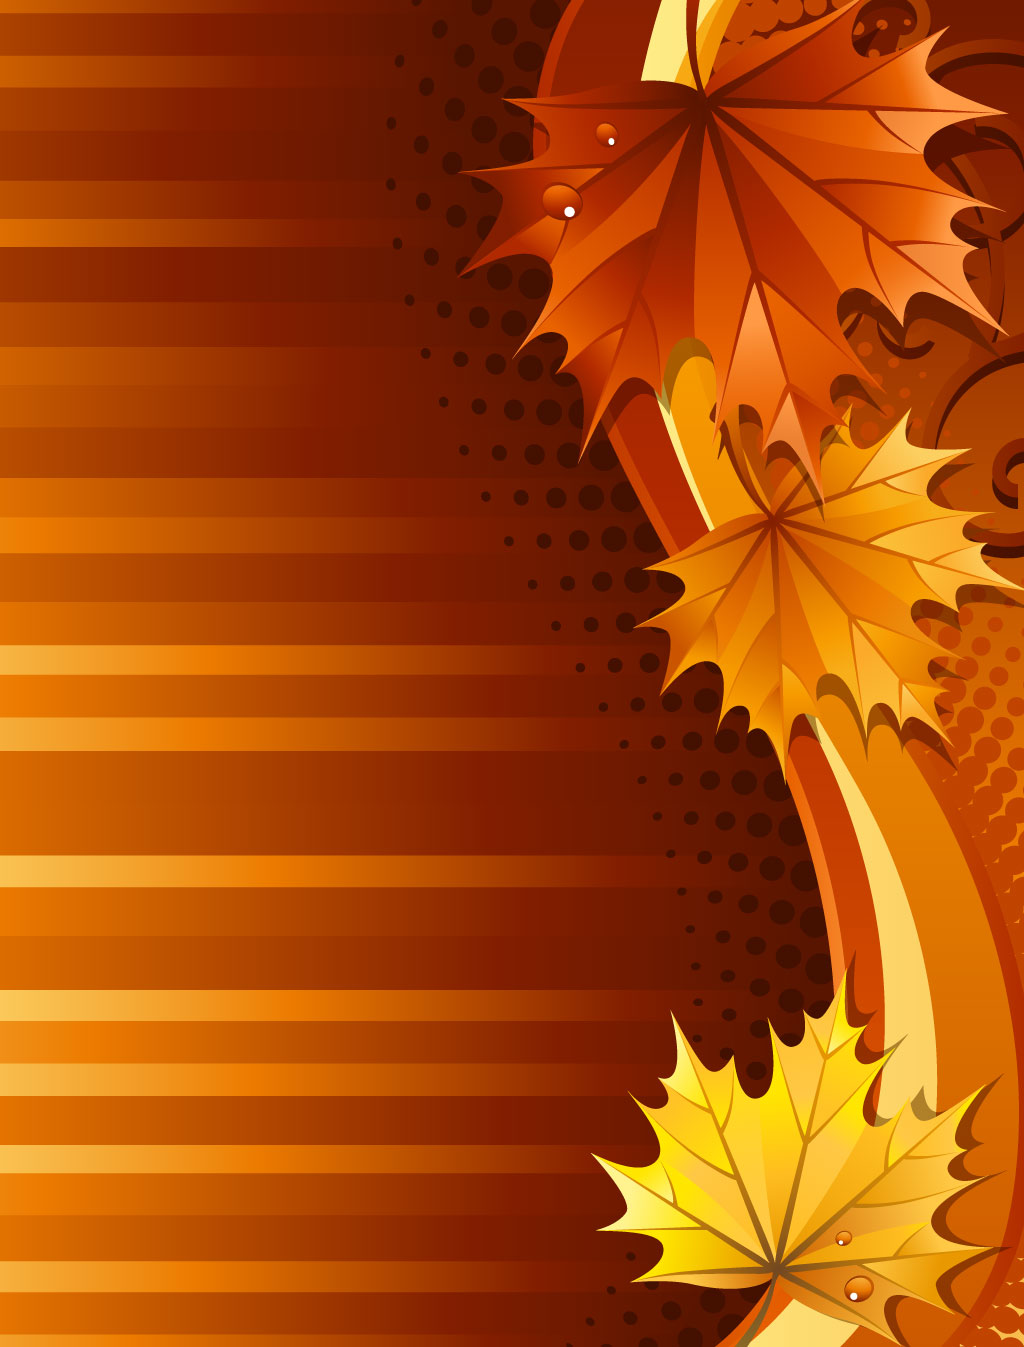 Rustic Fall Wallpaper Maple Leaf Wallpapers High Quality Download Free